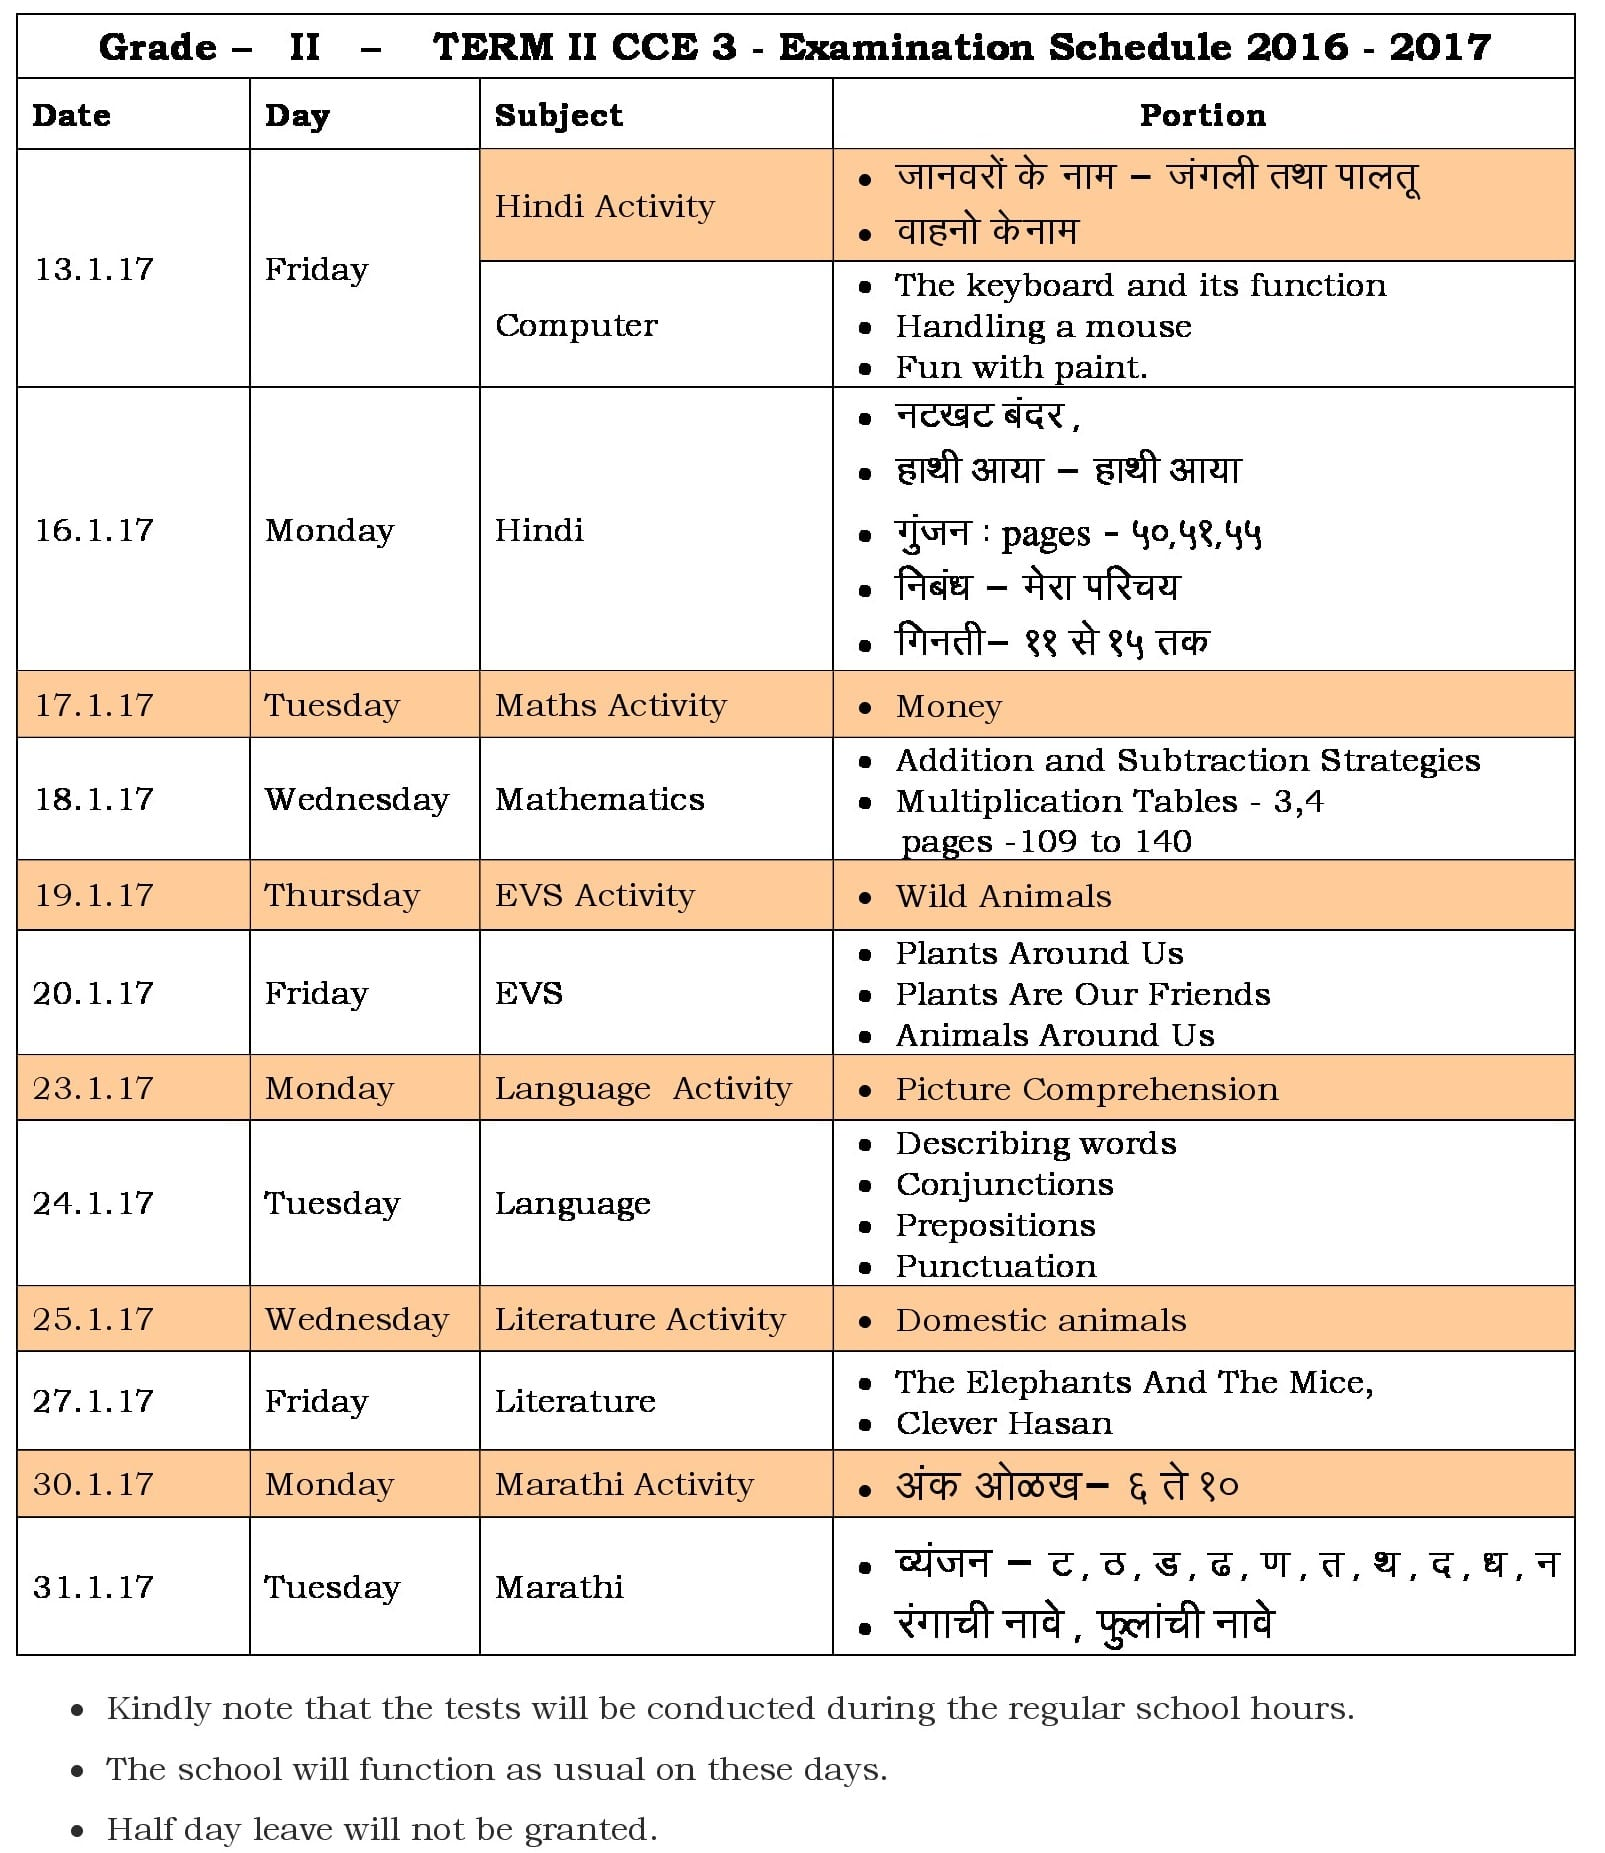 grade-ii-term-ii-cce-3-schedule